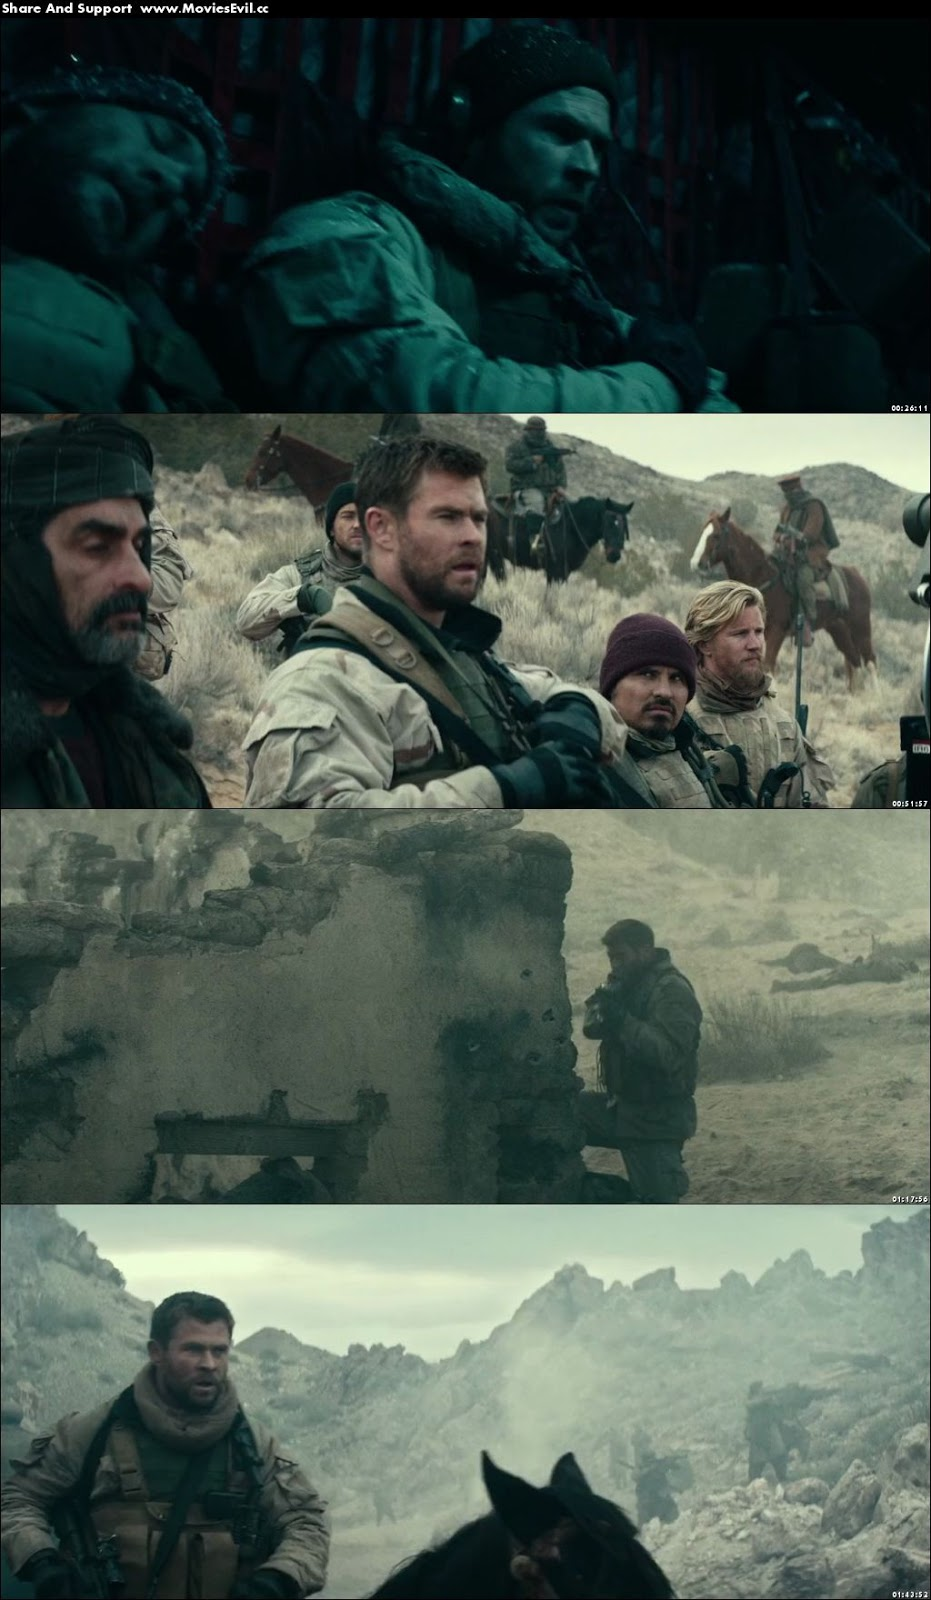 12 Strong 2018 English 720p BluRay x264 Free Download,12 Strong 2018full movie download,12 Strong 2018 dual audio 720p bluray download,12 Strong 2018 direct link download,12 Strong 2018300 mb download,12 Strong 2018 watch online hd,12 Strong 2018hindi dubbed 720p download,12 Strong 2018720p pxl download,12 Strong 2018 worldfree4u download,12 Strong 2018 downloadhub download